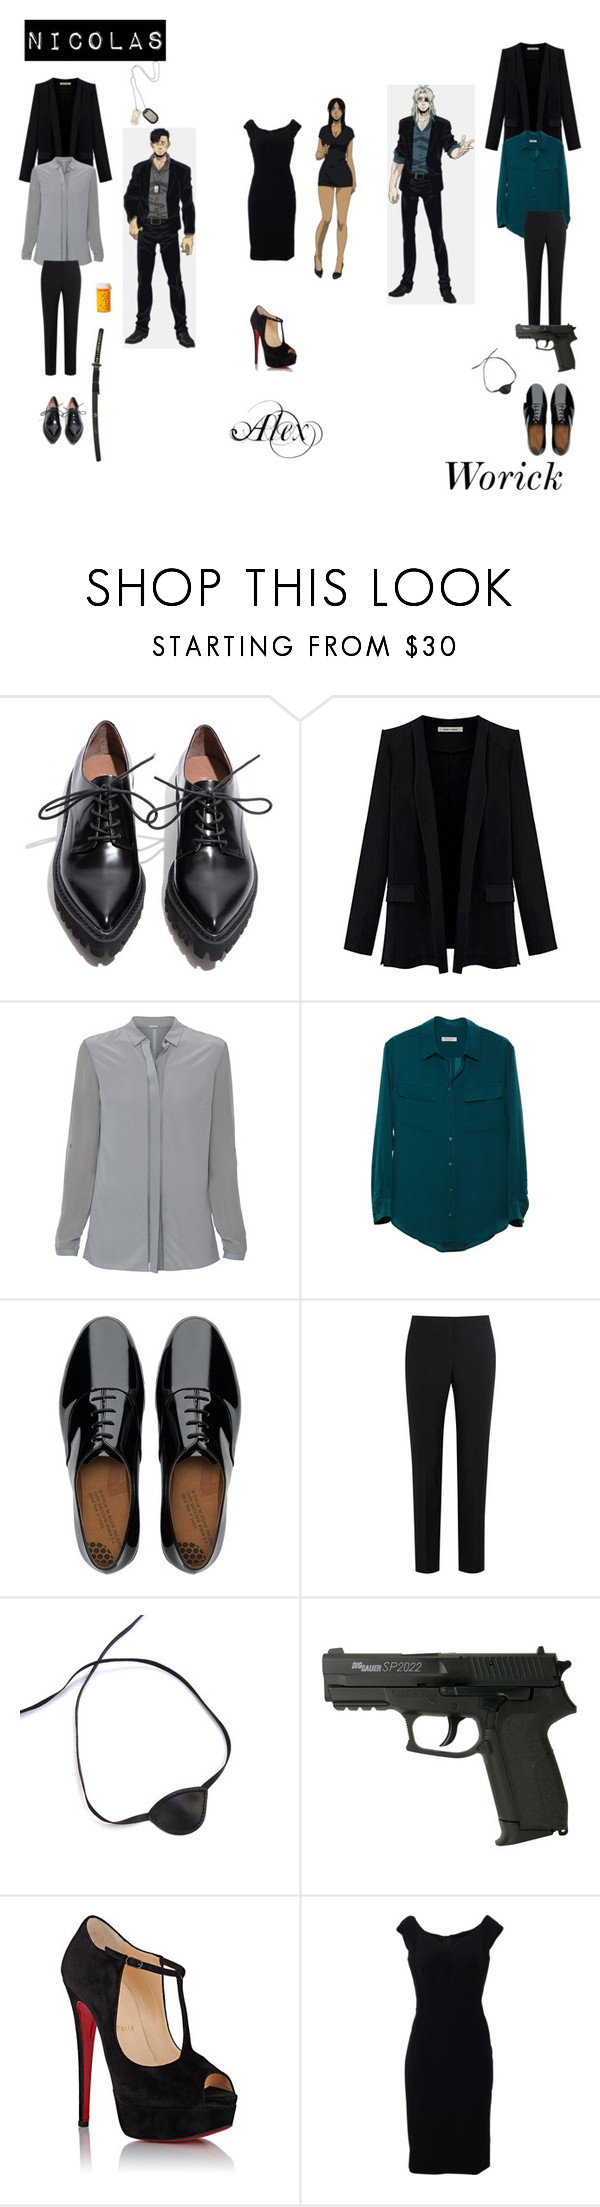 """""""Gangsta: Nicolas,Alex,Worick"""" by scorpio-aki on Polyvore featuring Jeffrey Campbell, Elie Tahari, Equipment, S.W.O.R.D., FitFlop, Paul Smith Black Label, Masquerade, Christian Louboutin, Dolce&Gabbana and mens"""